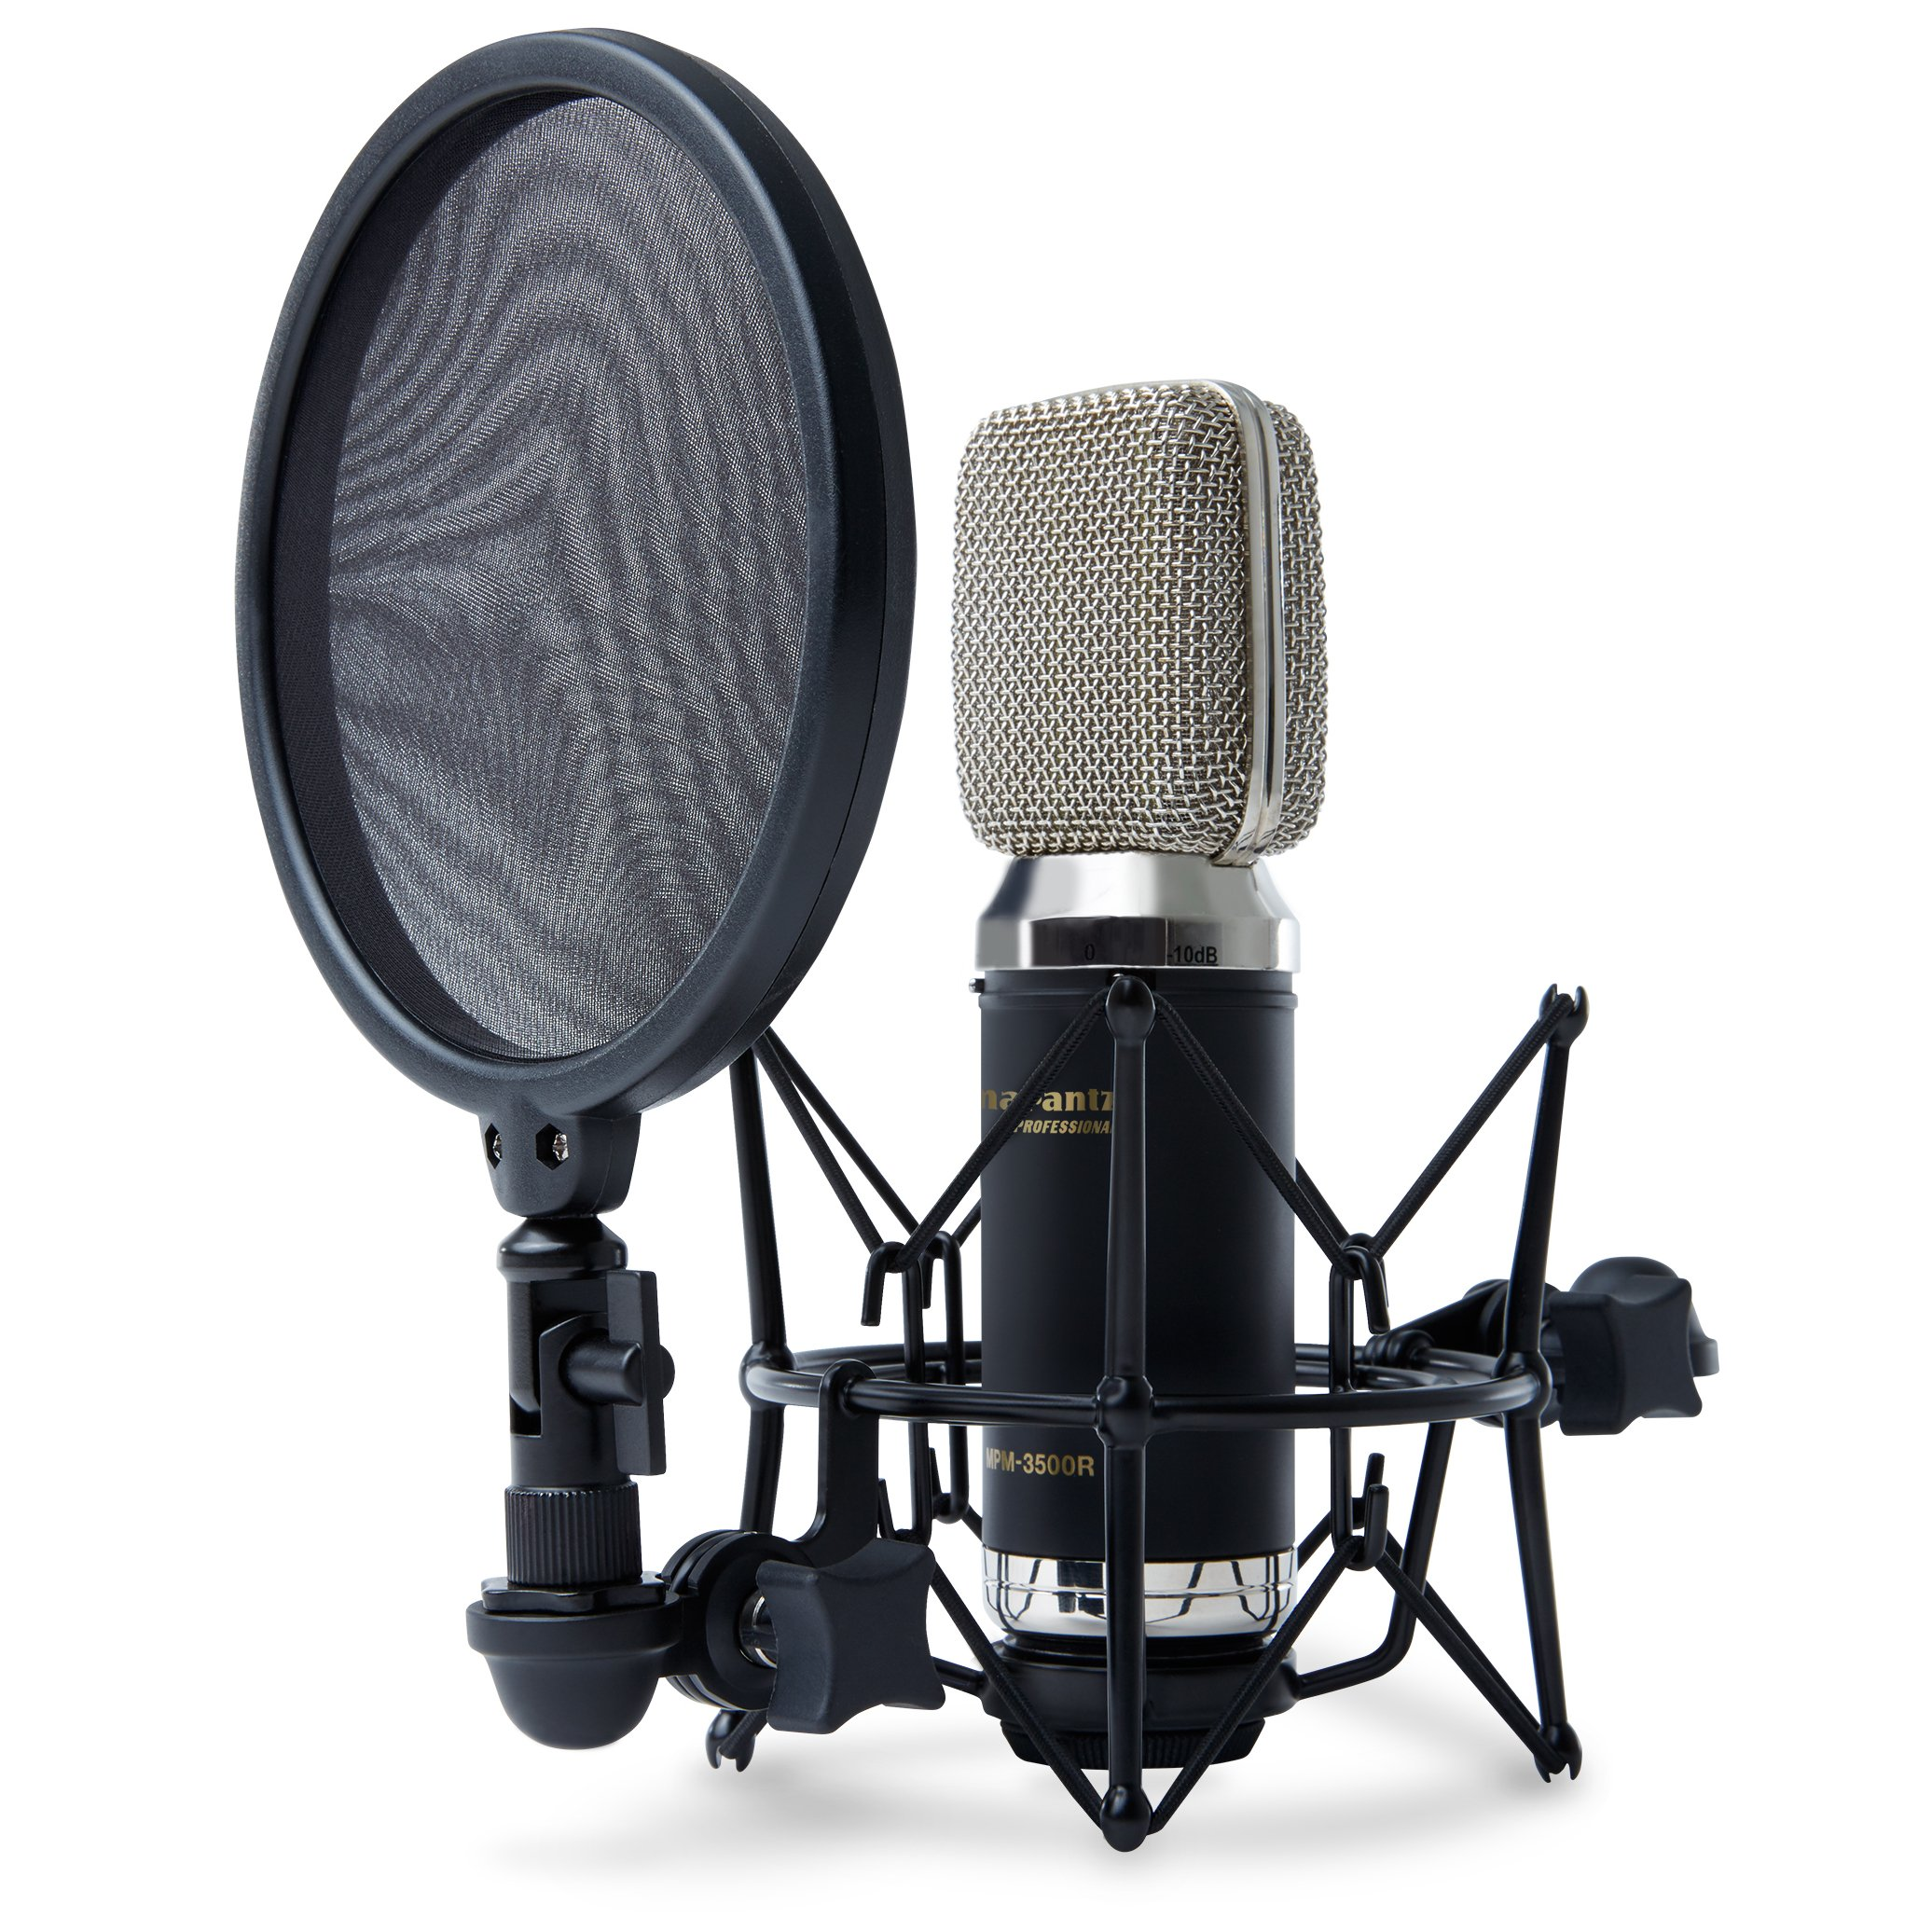 Marantz Professional MPM-3500R | Ribbon Microphone with Low-Mass Diaphragm and High Sound-Pressure Tolerance (XLR Out) by Marantz Professional (Image #1)